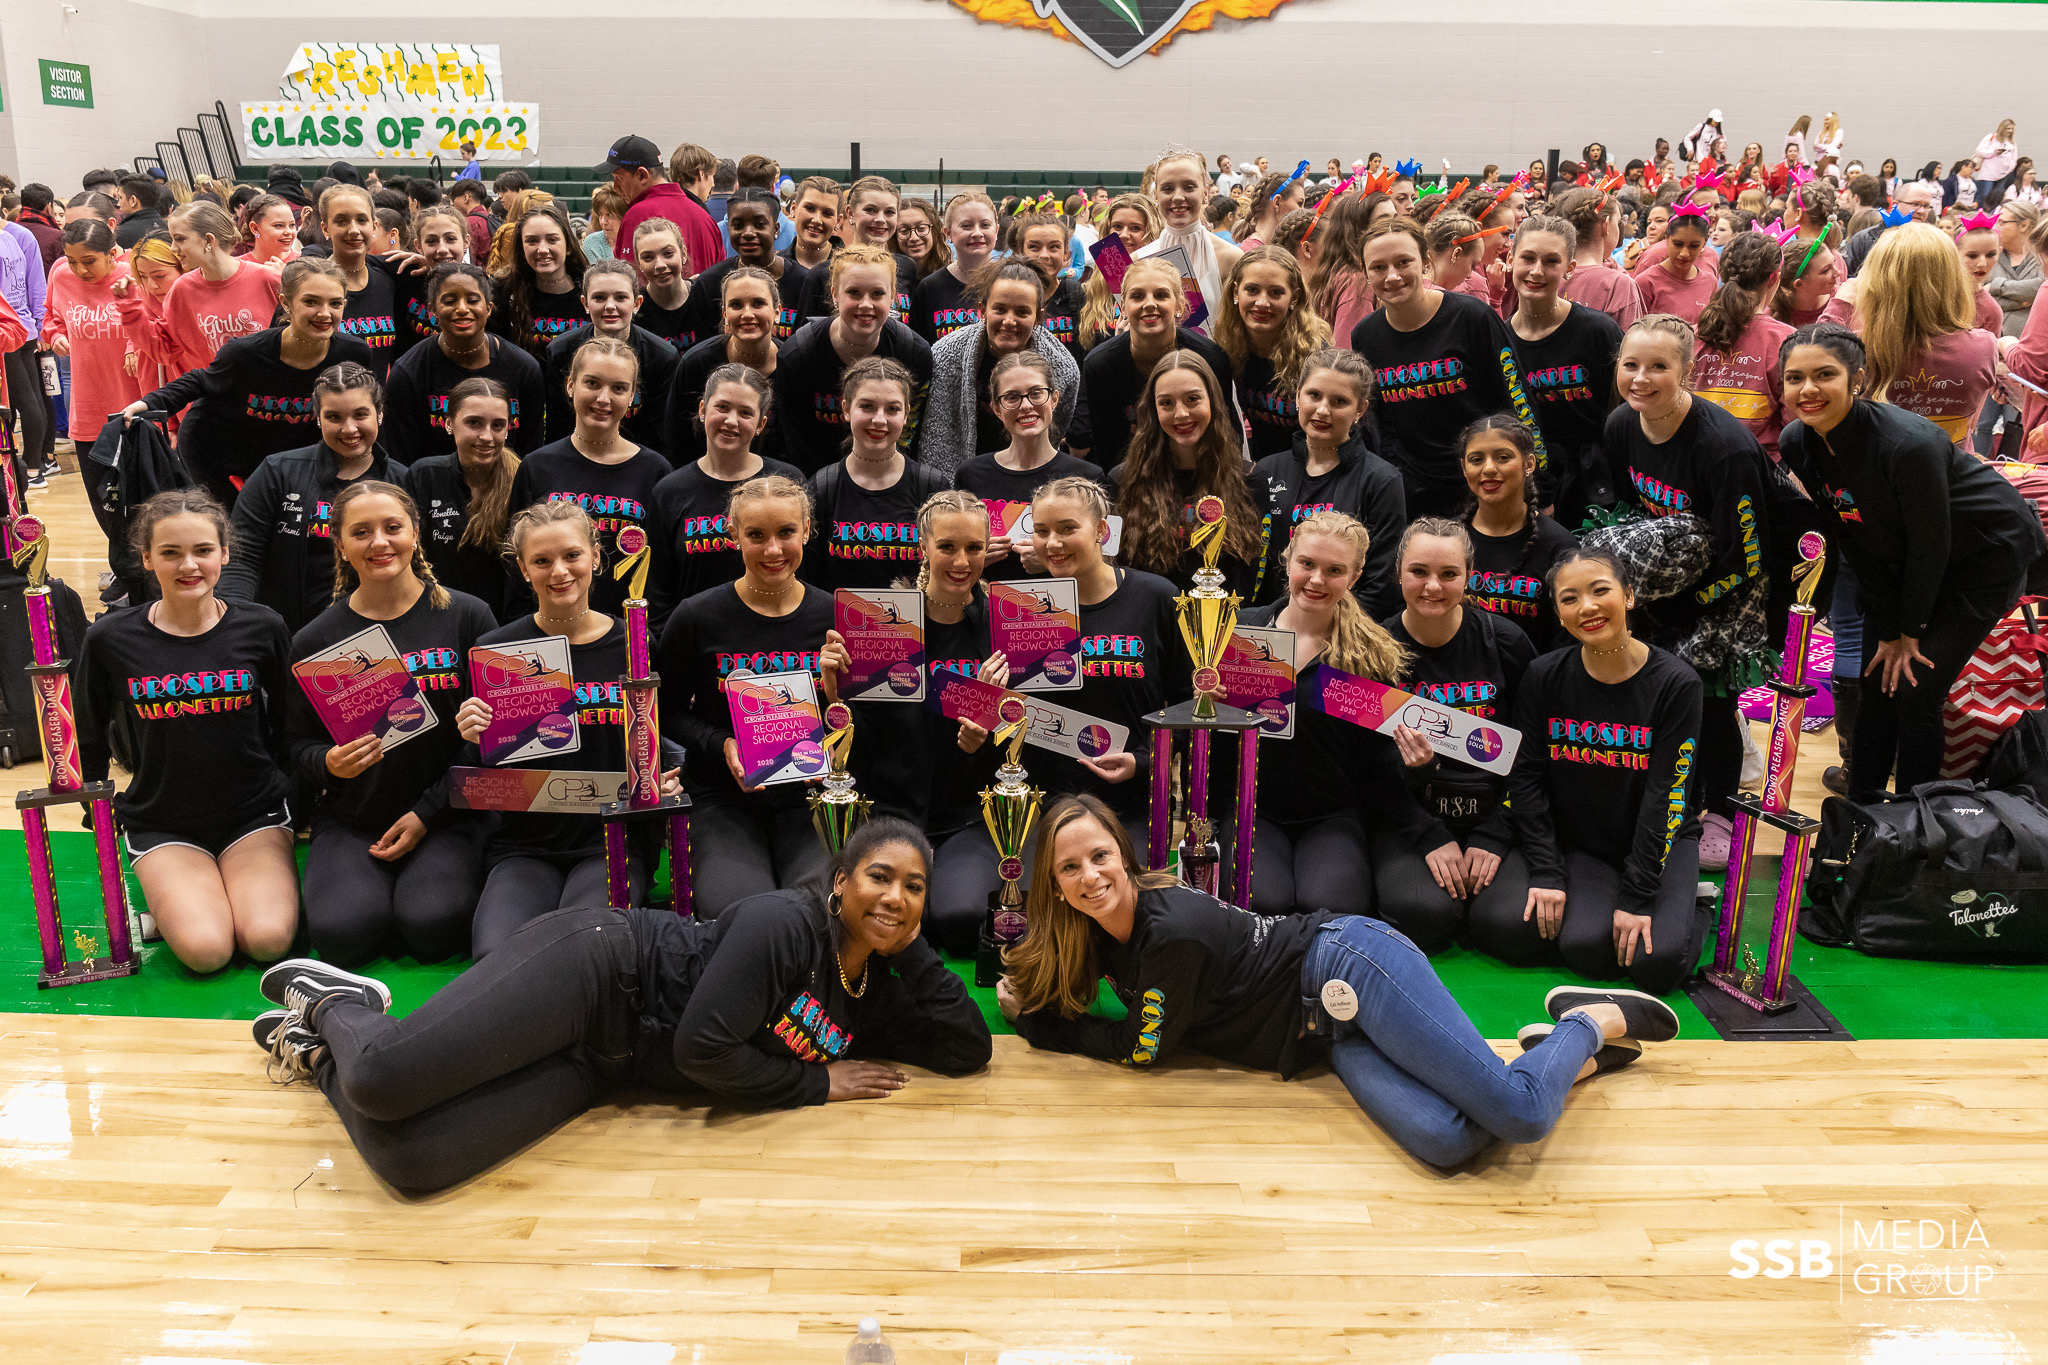 Prosper Talonettes Compete at Crowd Pleasers Dance Contest